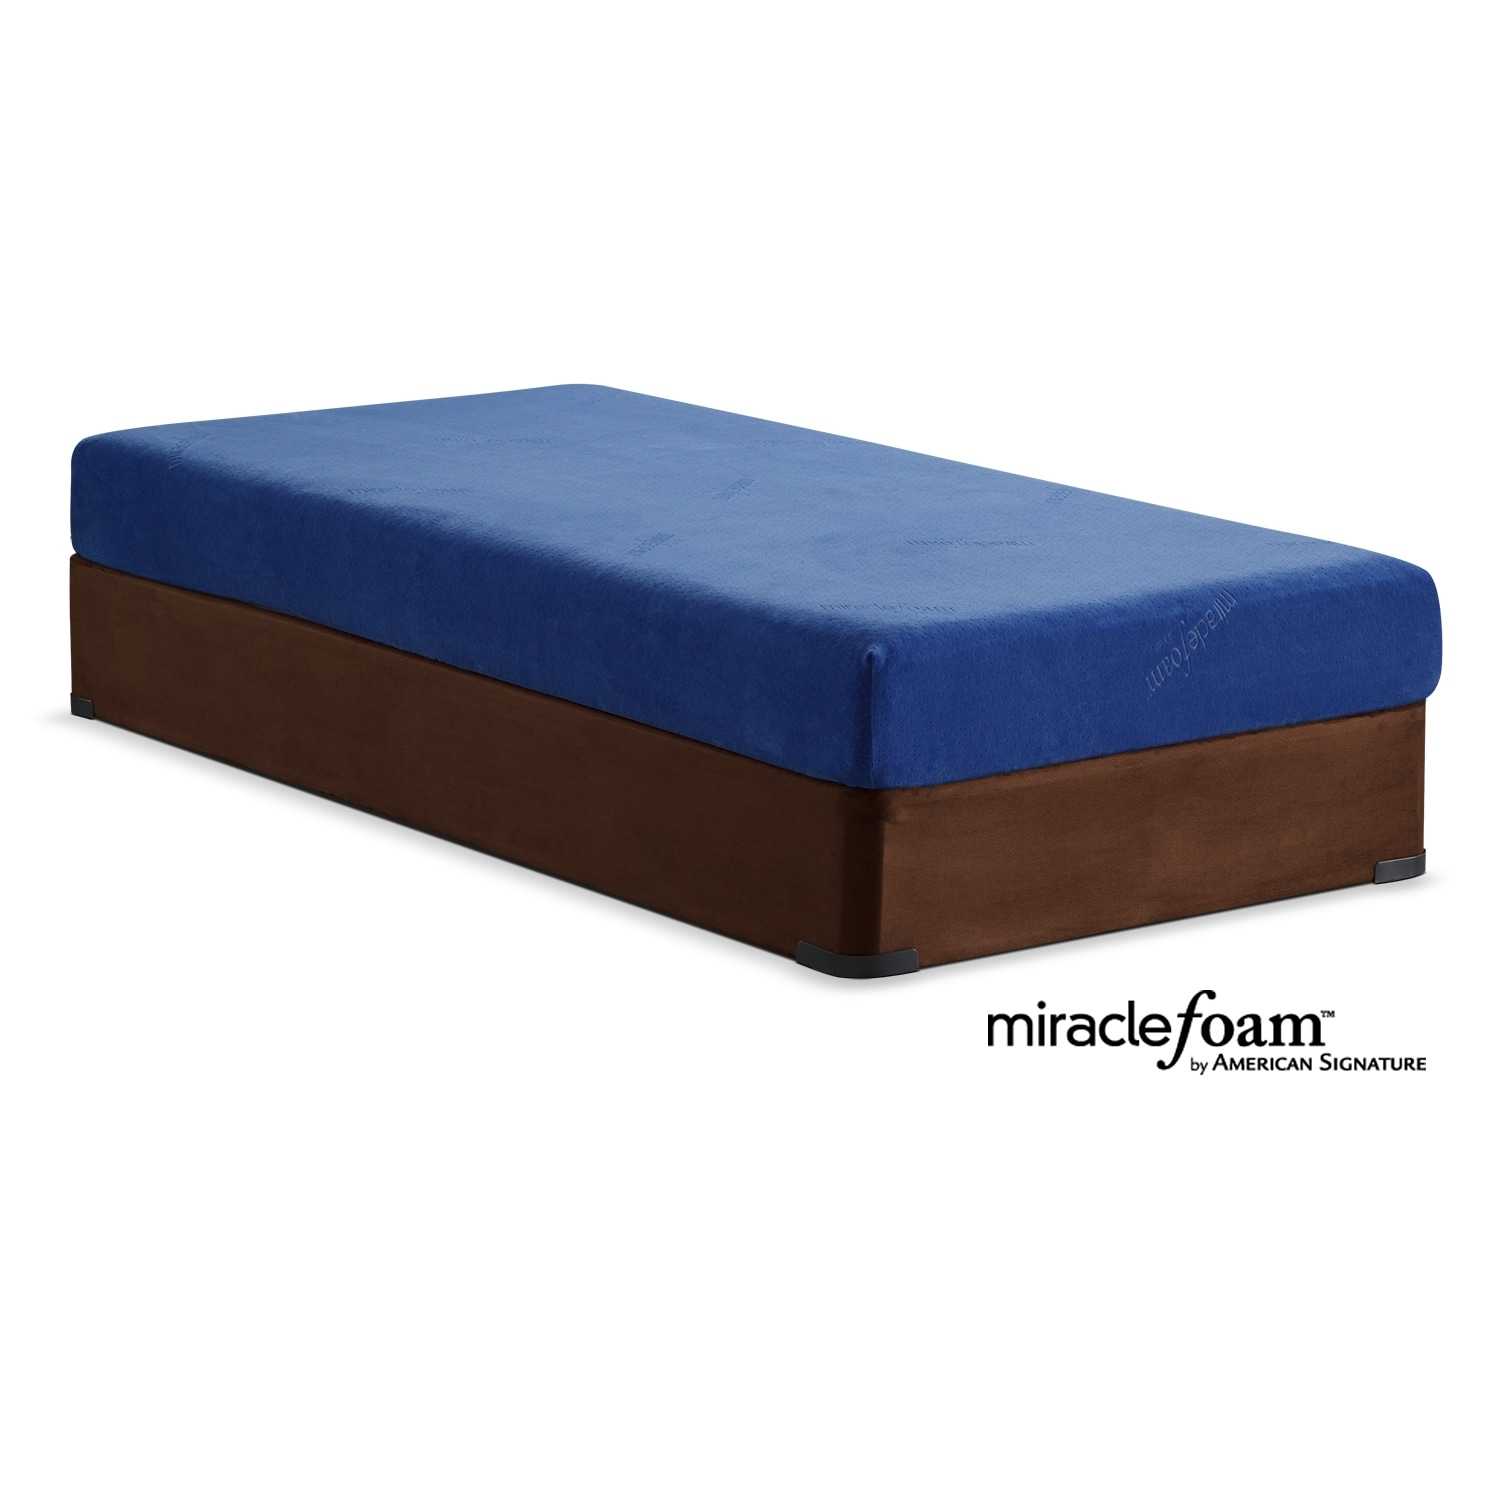 Mattresses and Bedding - Renew Blue Twin Mattress and Foundation Set